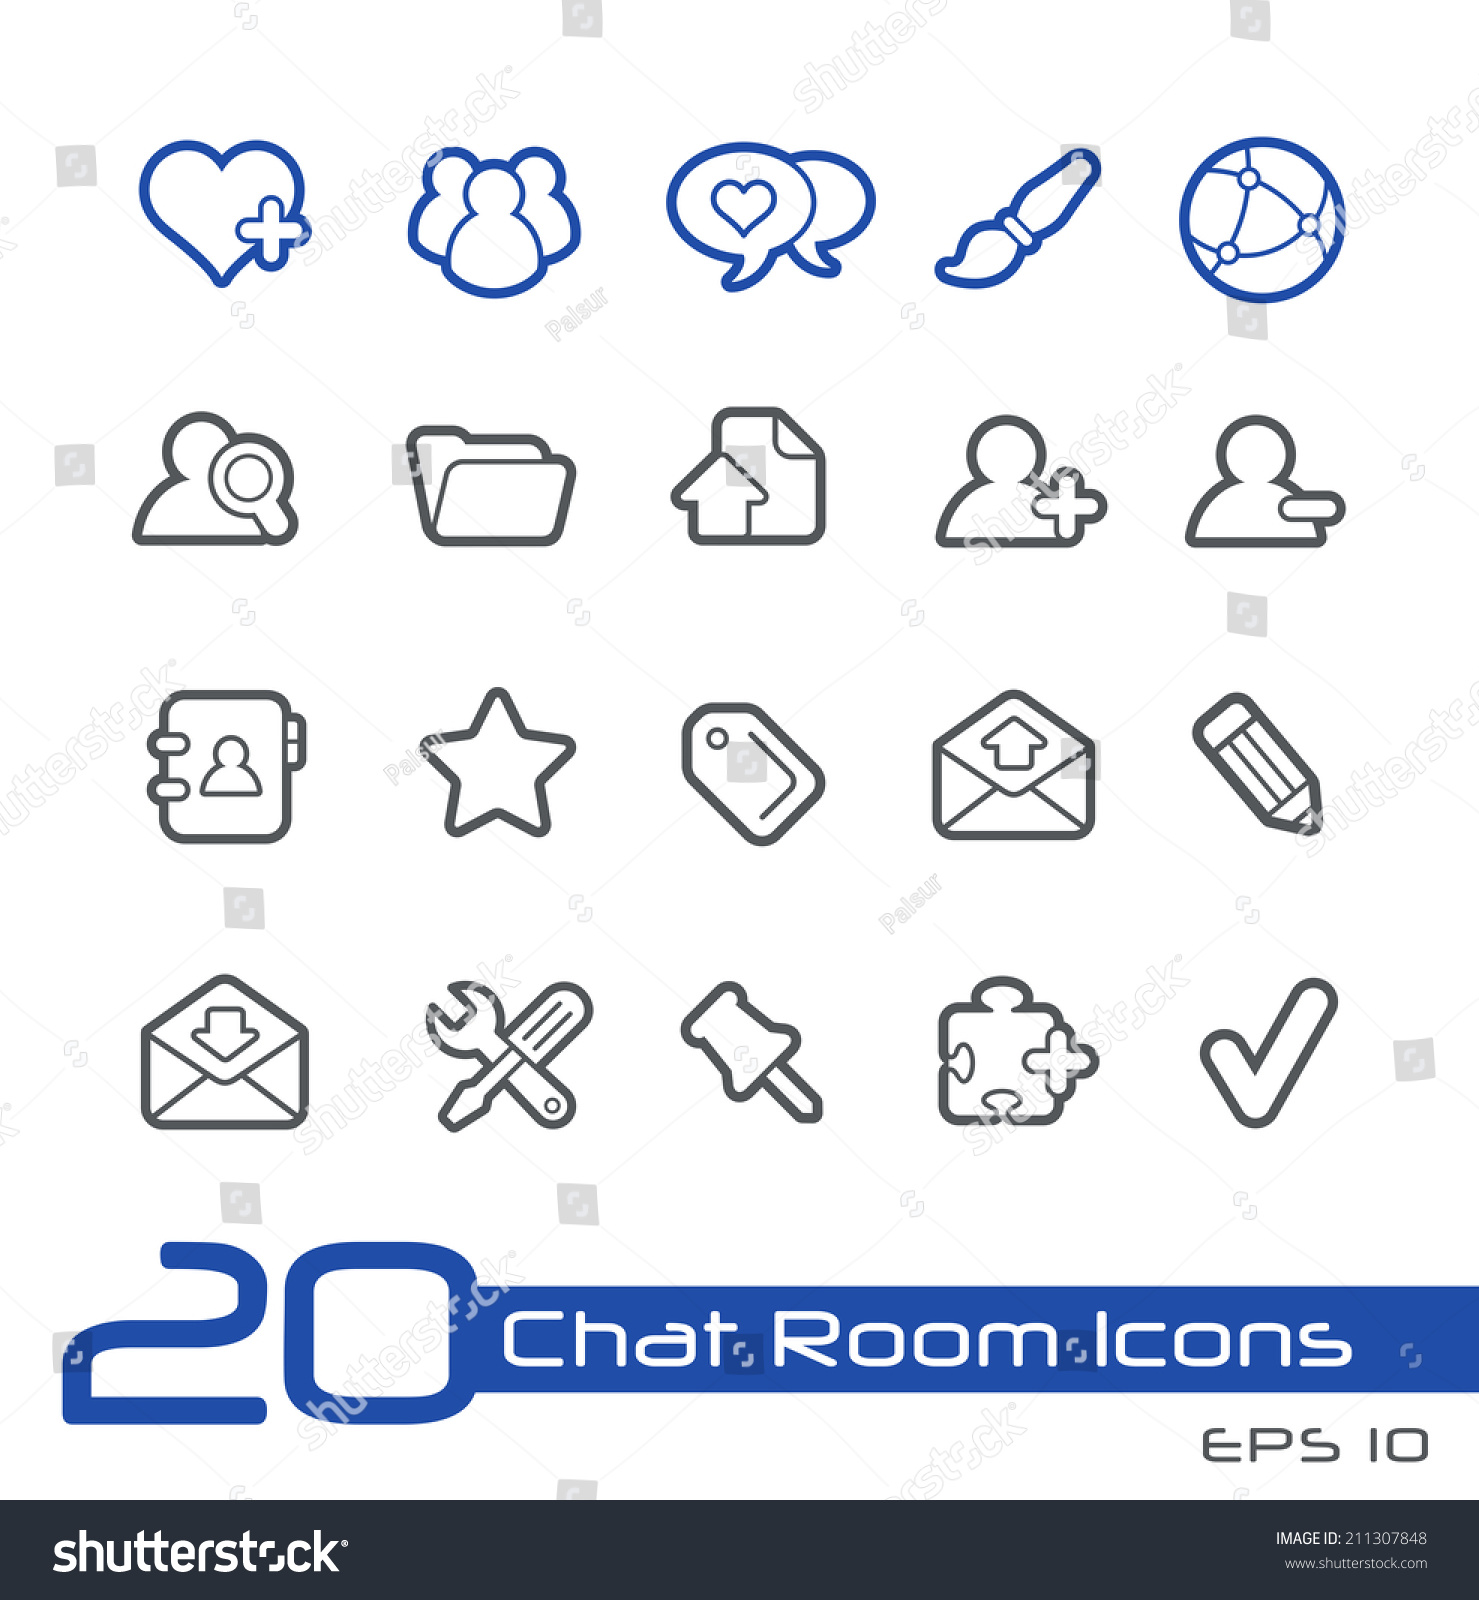 guys chat room icon